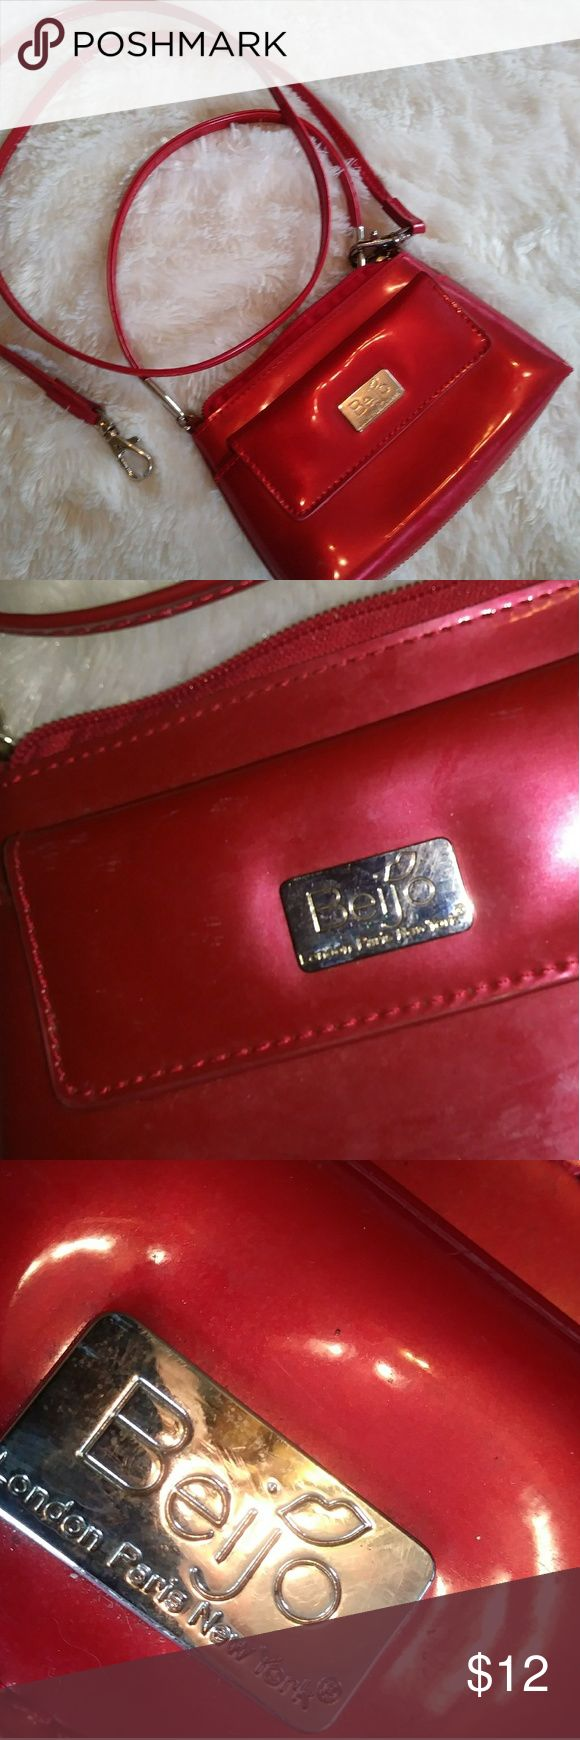 """Red Beijo London Paris New York Small Hand Bag 7"""" (W) x 4"""" (H) Hand or shoulder bag. In excellent condition. Any questions please ask. Thanks for viewing. Happy poshing! Beijo Bags Shoulder Bags"""